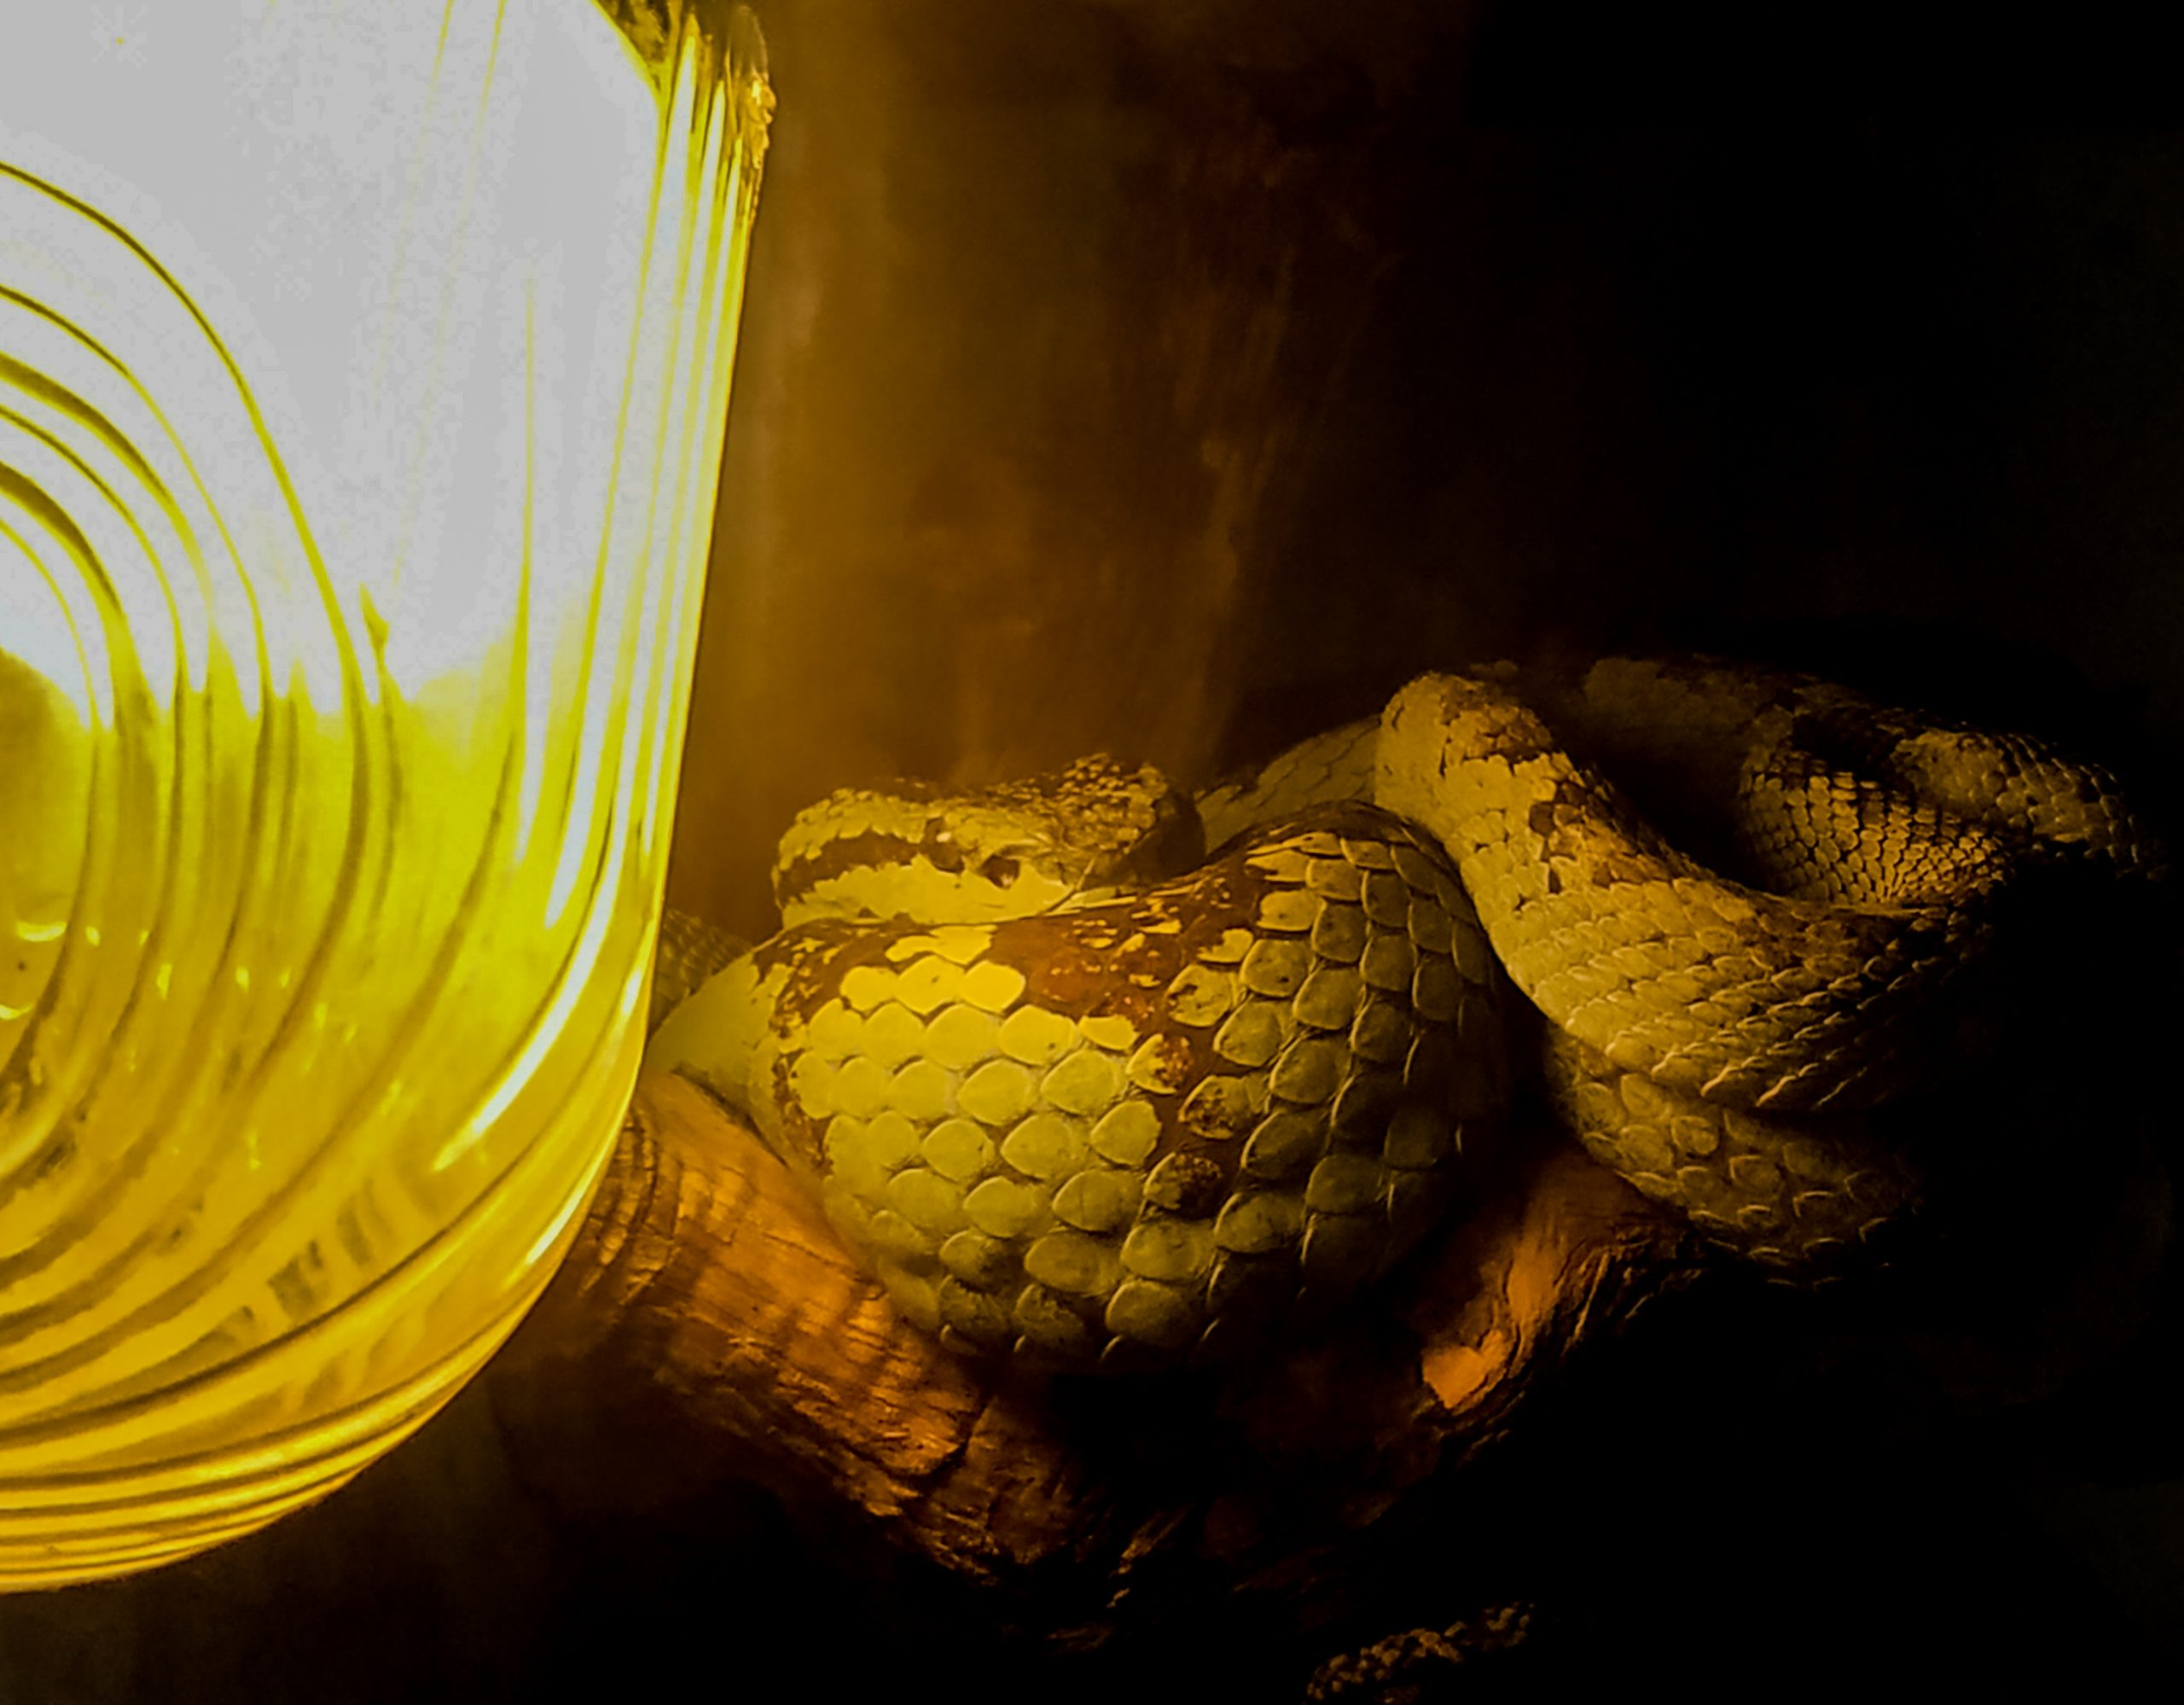 A snake in low light